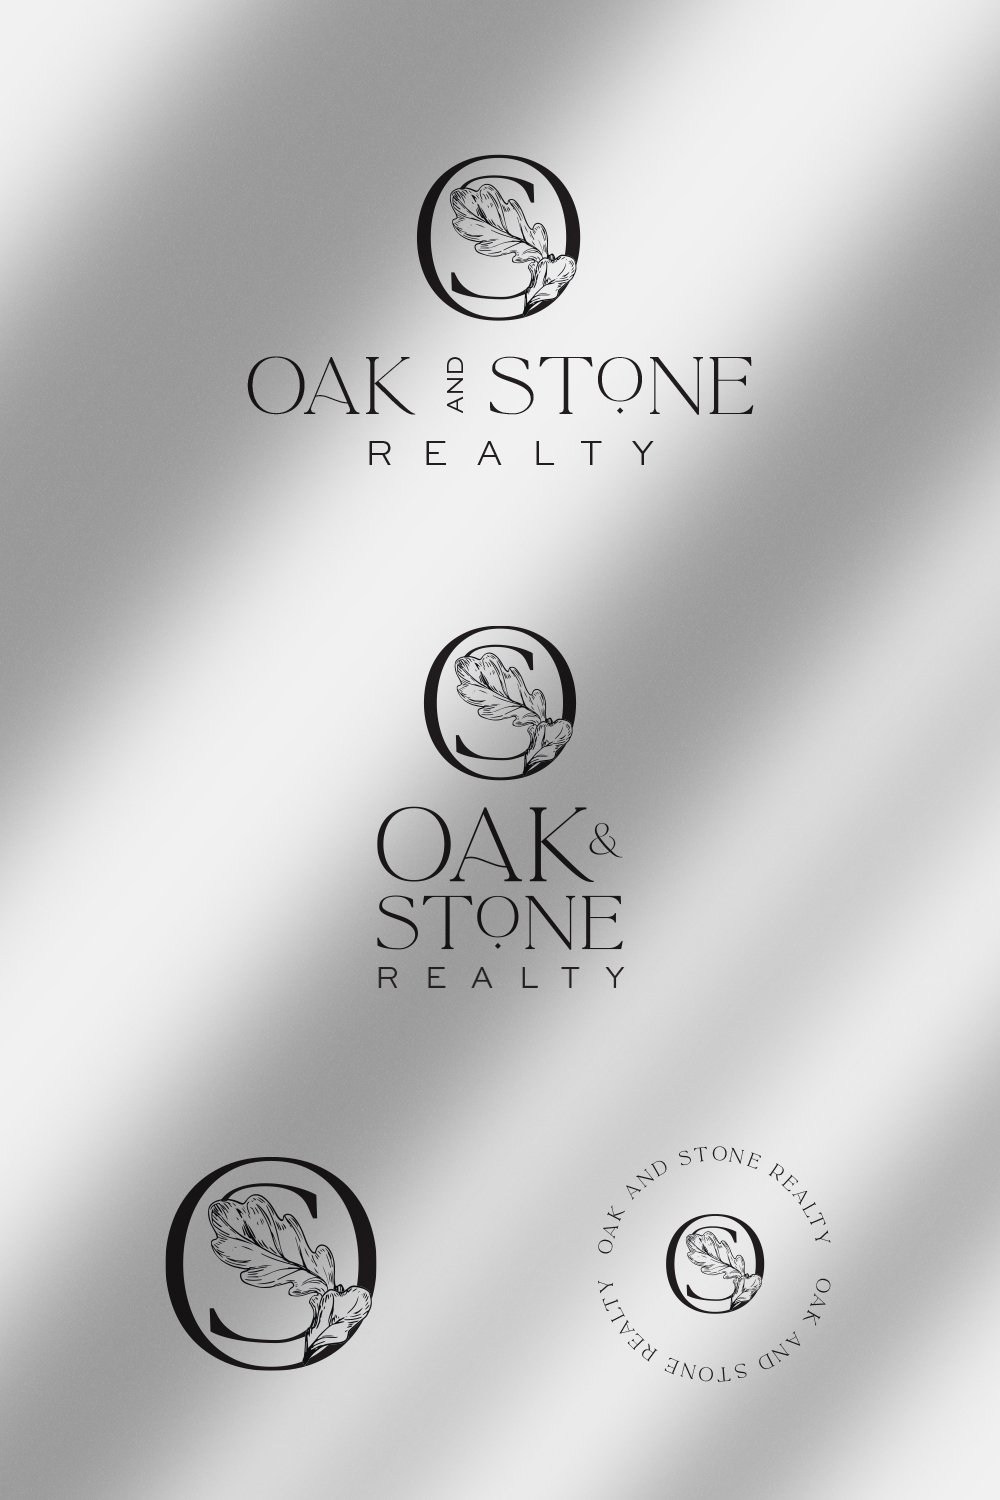 luxurious, professional logo design for Oak and Stone Realty